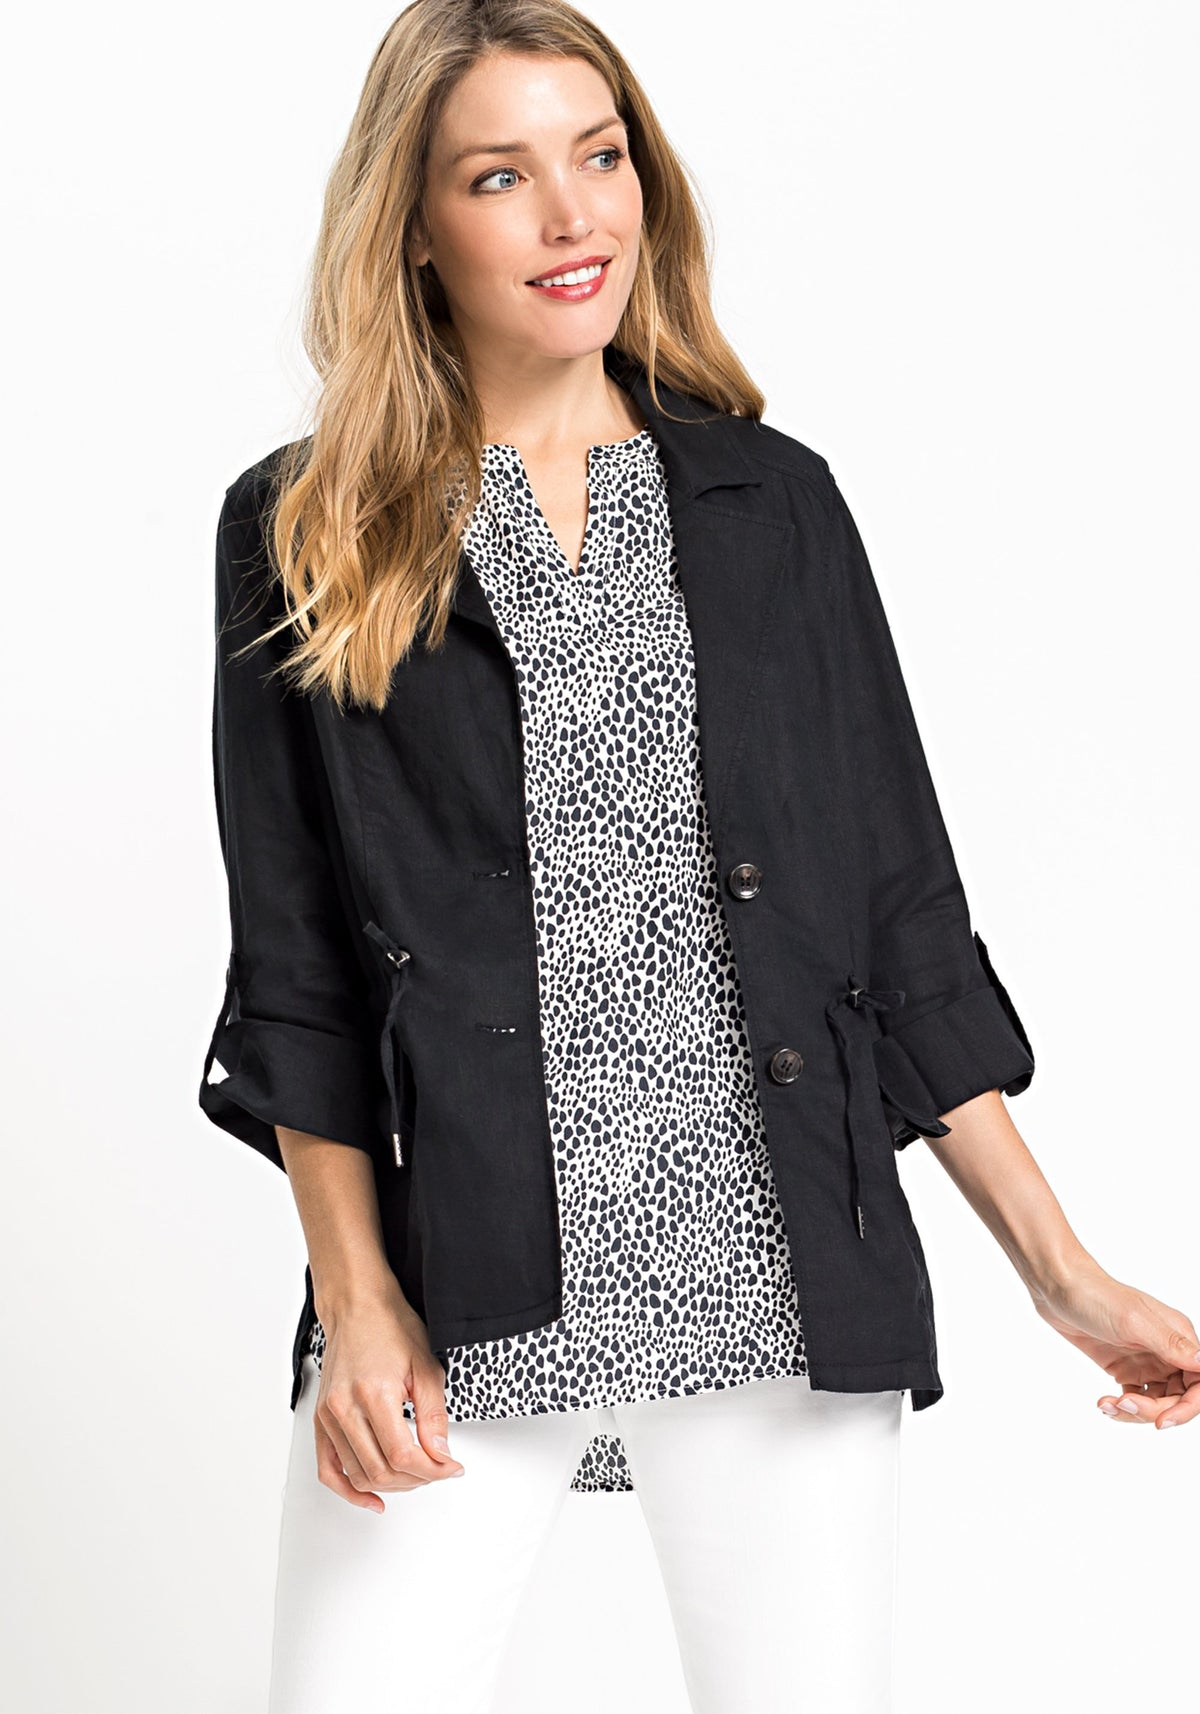 100% Linen Long Sleeve Blazer with Drawstring Waist and Roll Tab Sleeve Detail